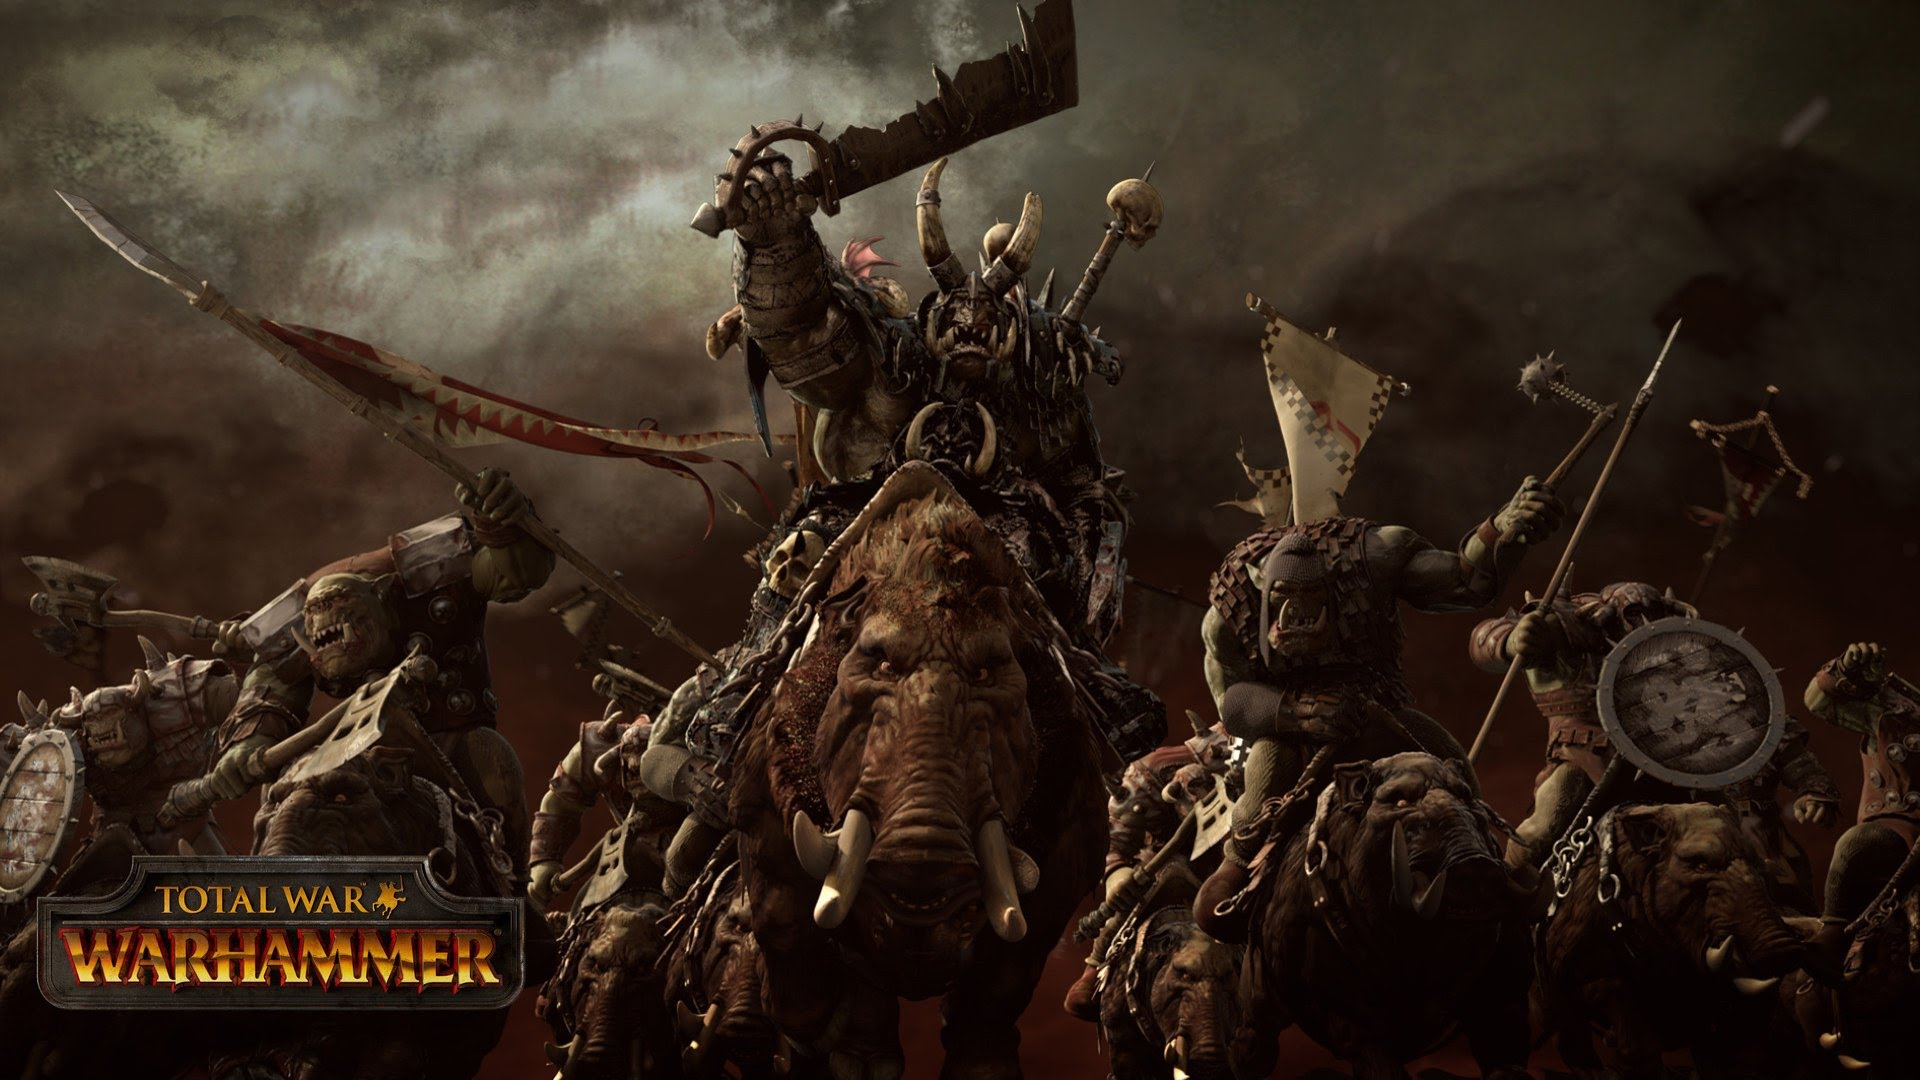 Warhammer clipart 1080p Campaign Fanatic Up Total Up